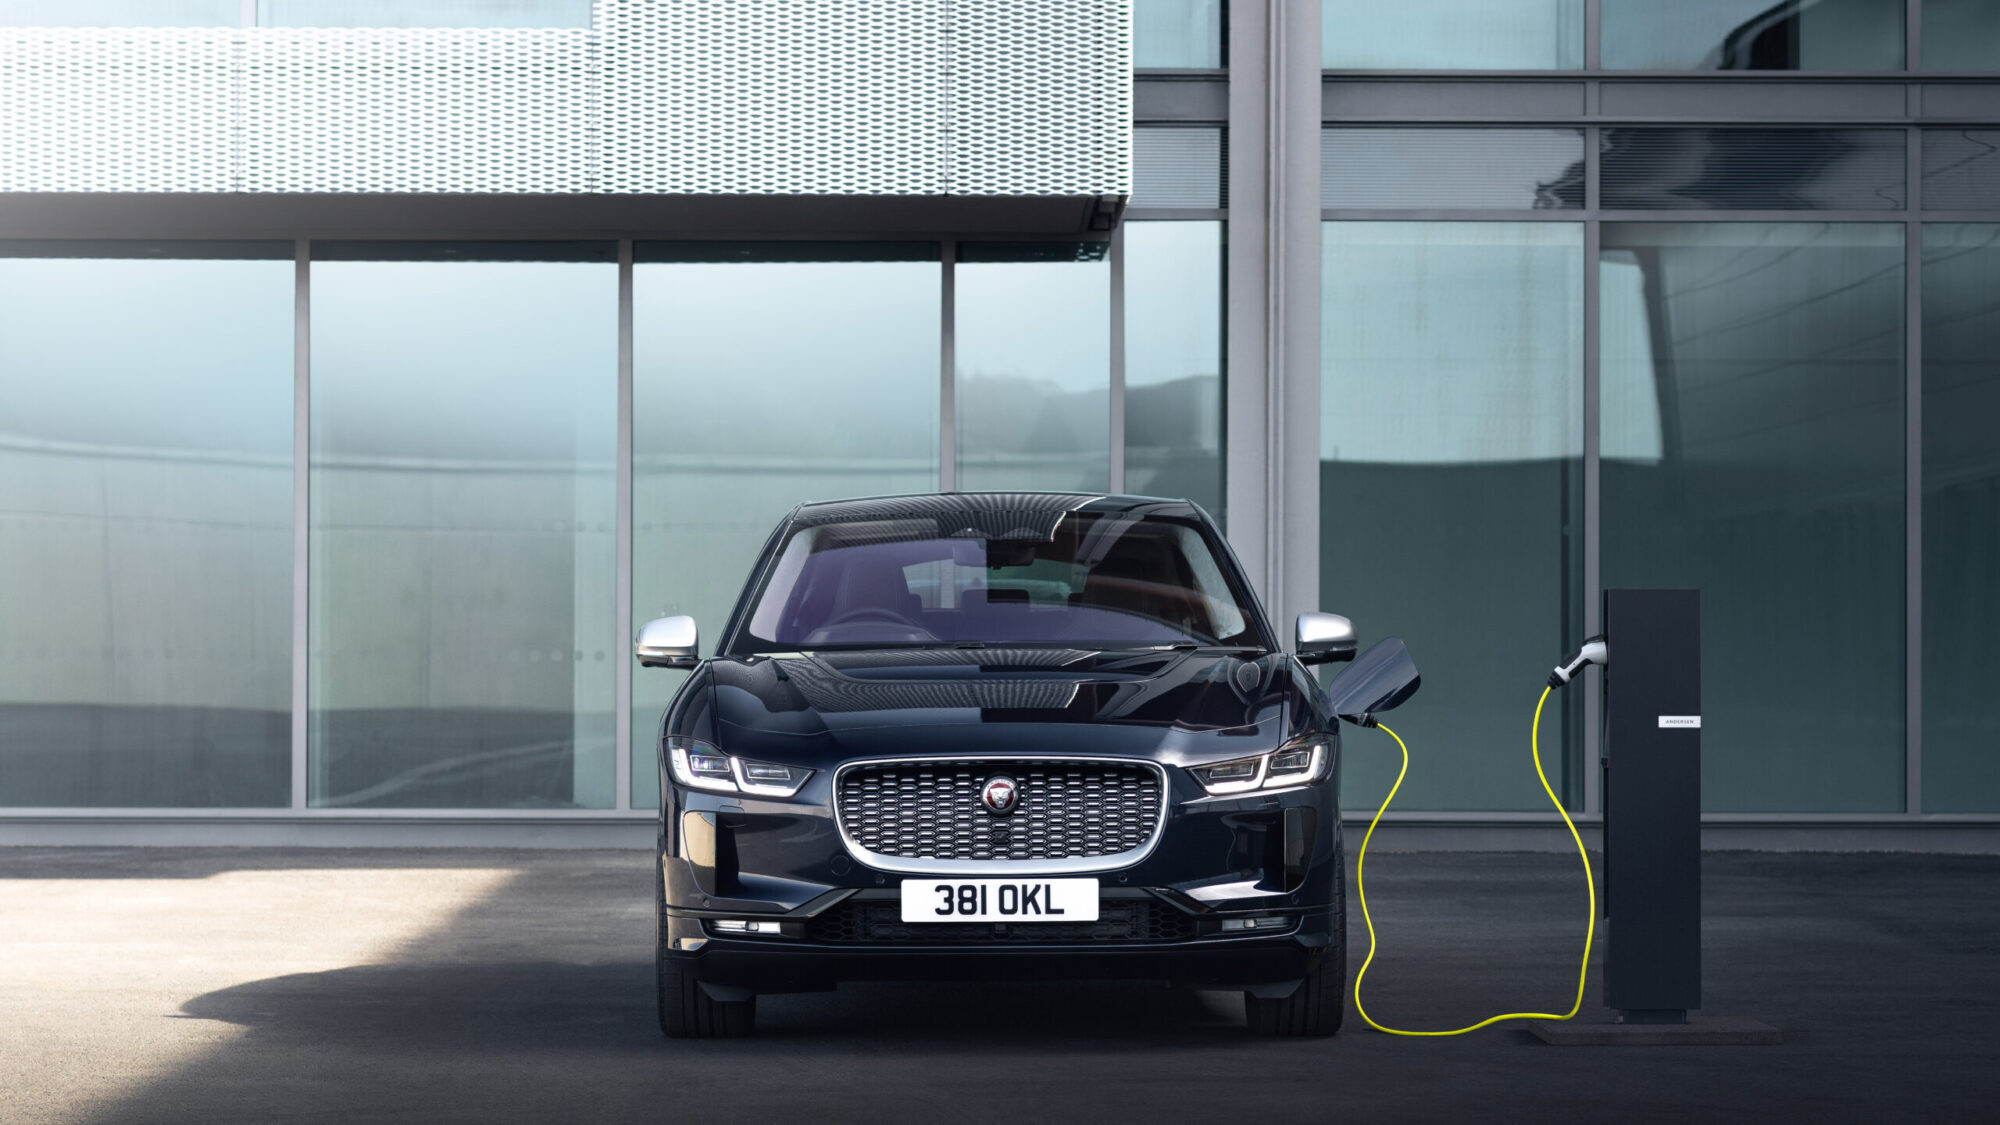 Jaguar to sell electric cars only from 2025